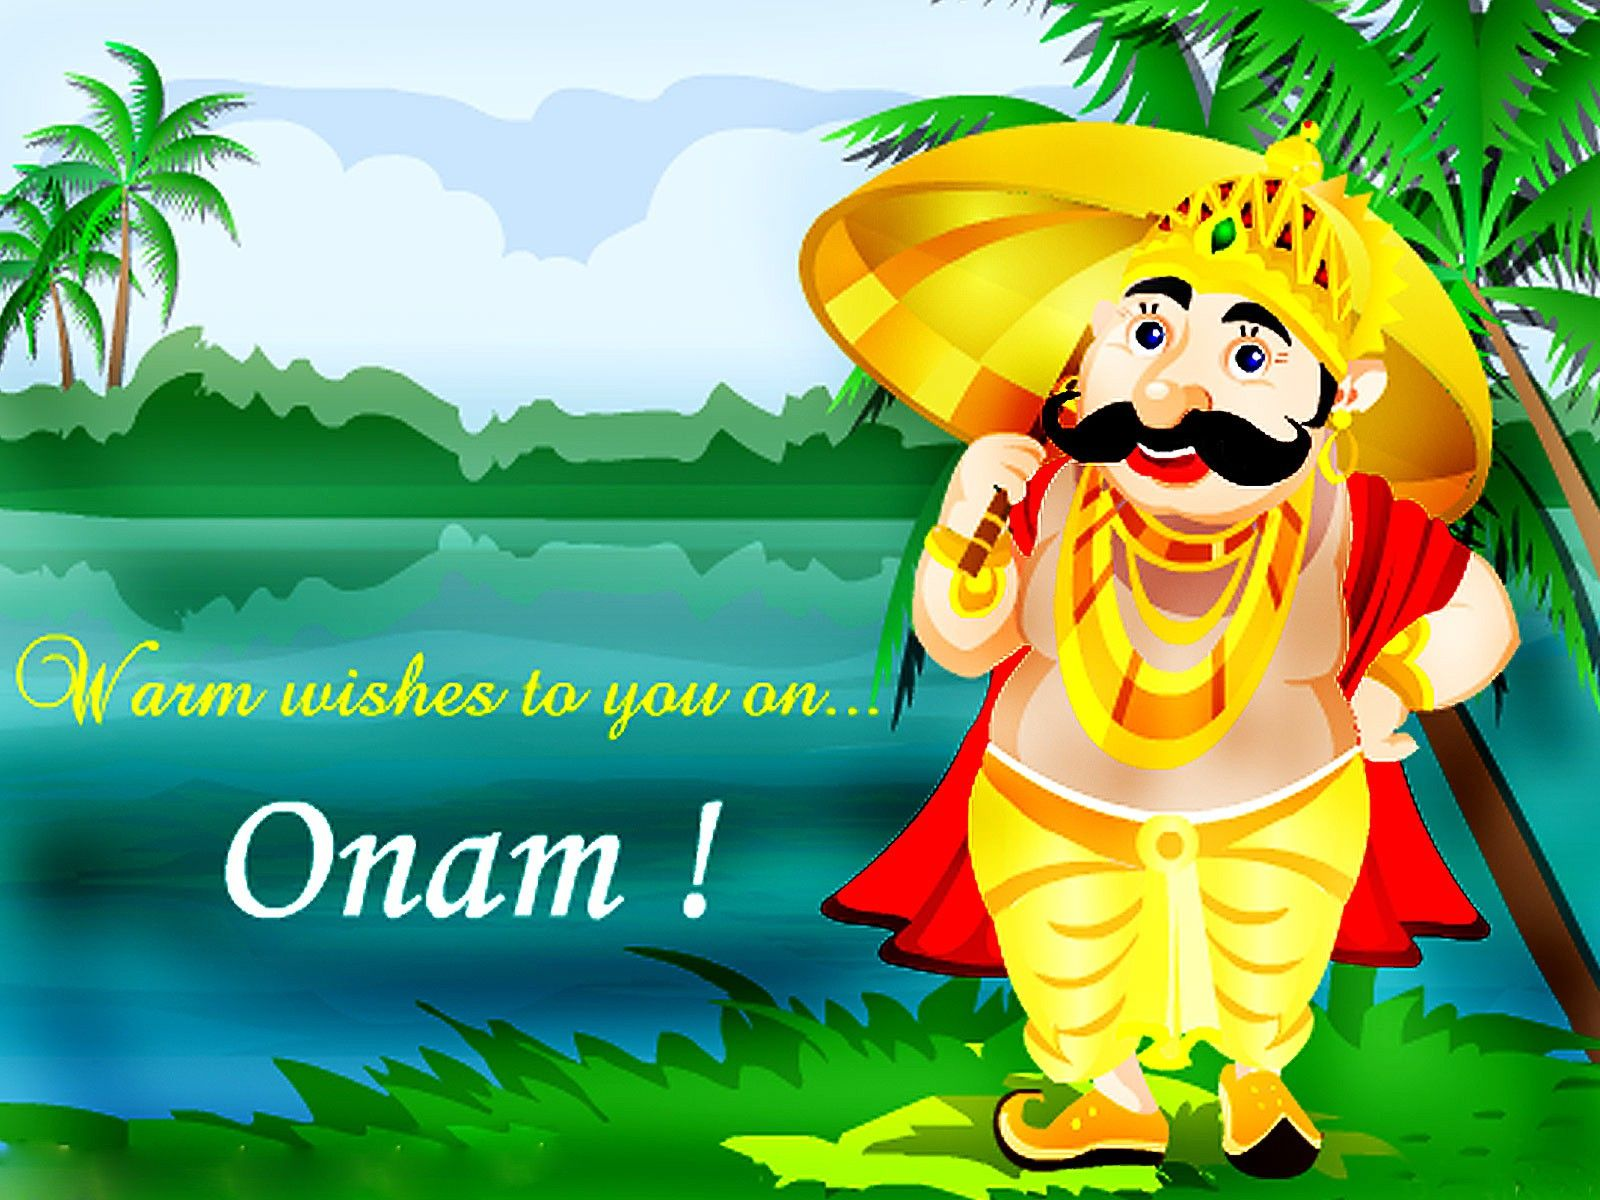 Onam Wishes From Partycenter Party Center Pinterest